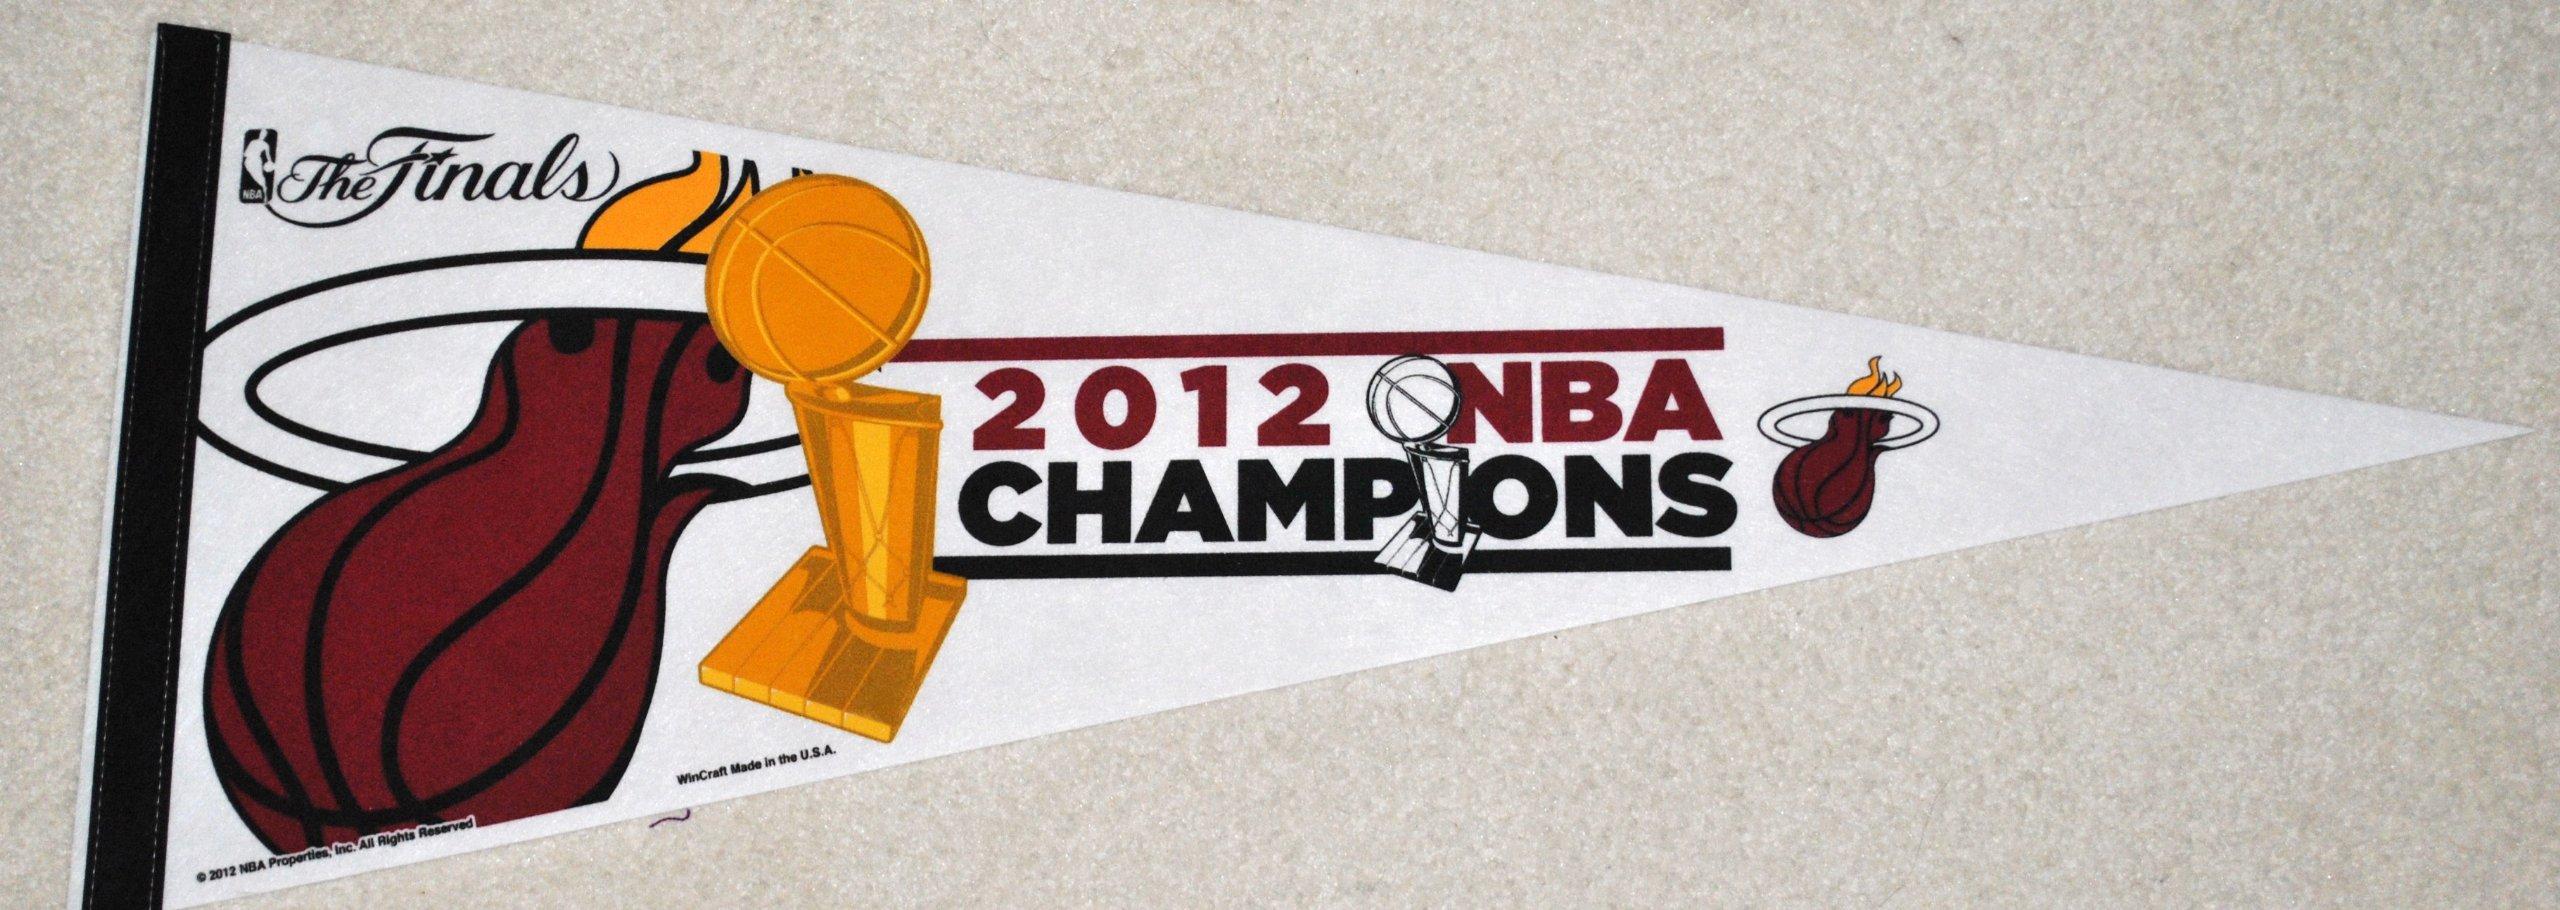 Miami Heat Official 2012 NBA Championship Commerative felt pennant full size Limited Edition